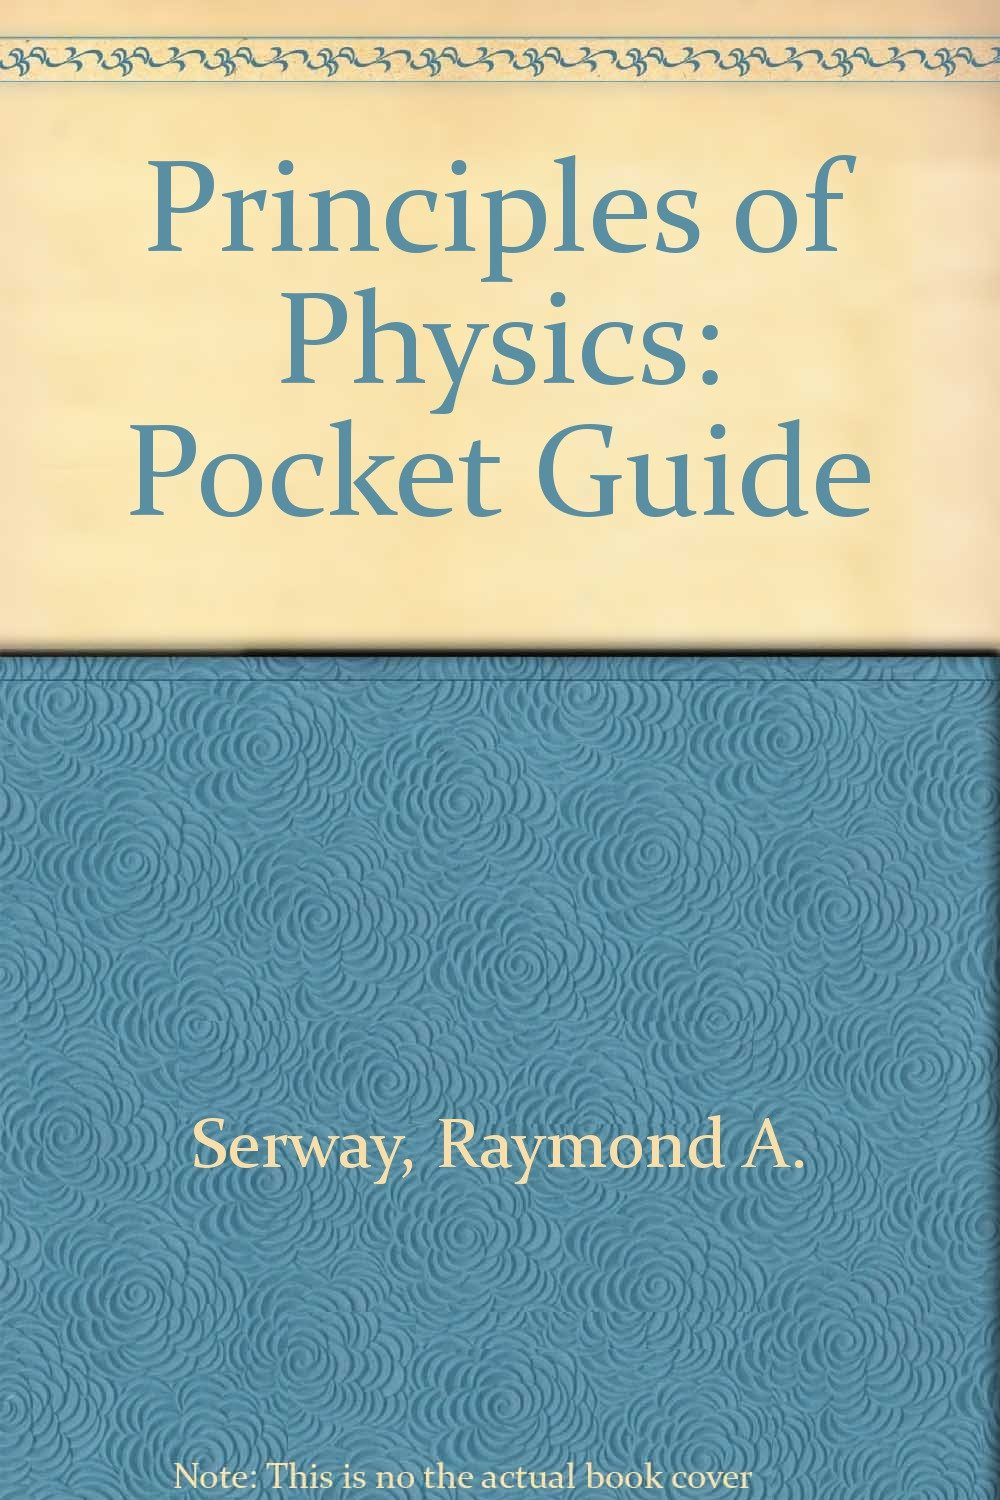 Principles of Physics: Pocket Guide: Raymond A. Serway ...